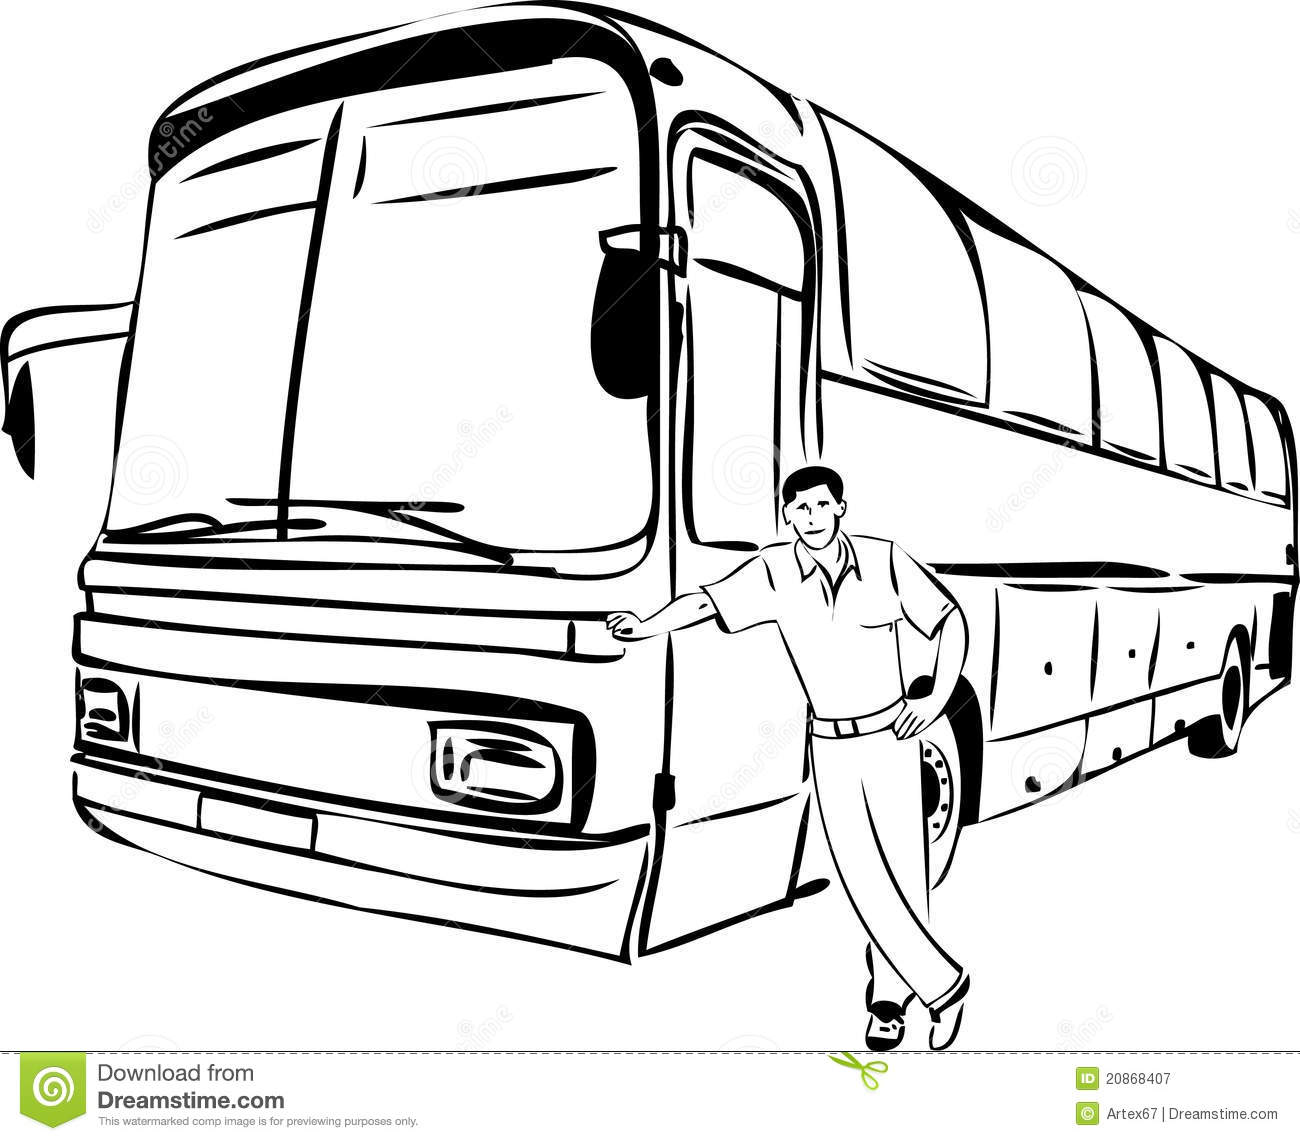 Royalty Free Stock Images Bicycle Motorcycle Silhouettes Image9364369 in addition Royalty Free Stock Photography Sketch Man Near His Bus Driver Image20868407 furthermore Free Screen Beans Clipart likewise Imagenes De Buscando A Nemo Para Colorear likewise Watch. on bus animation